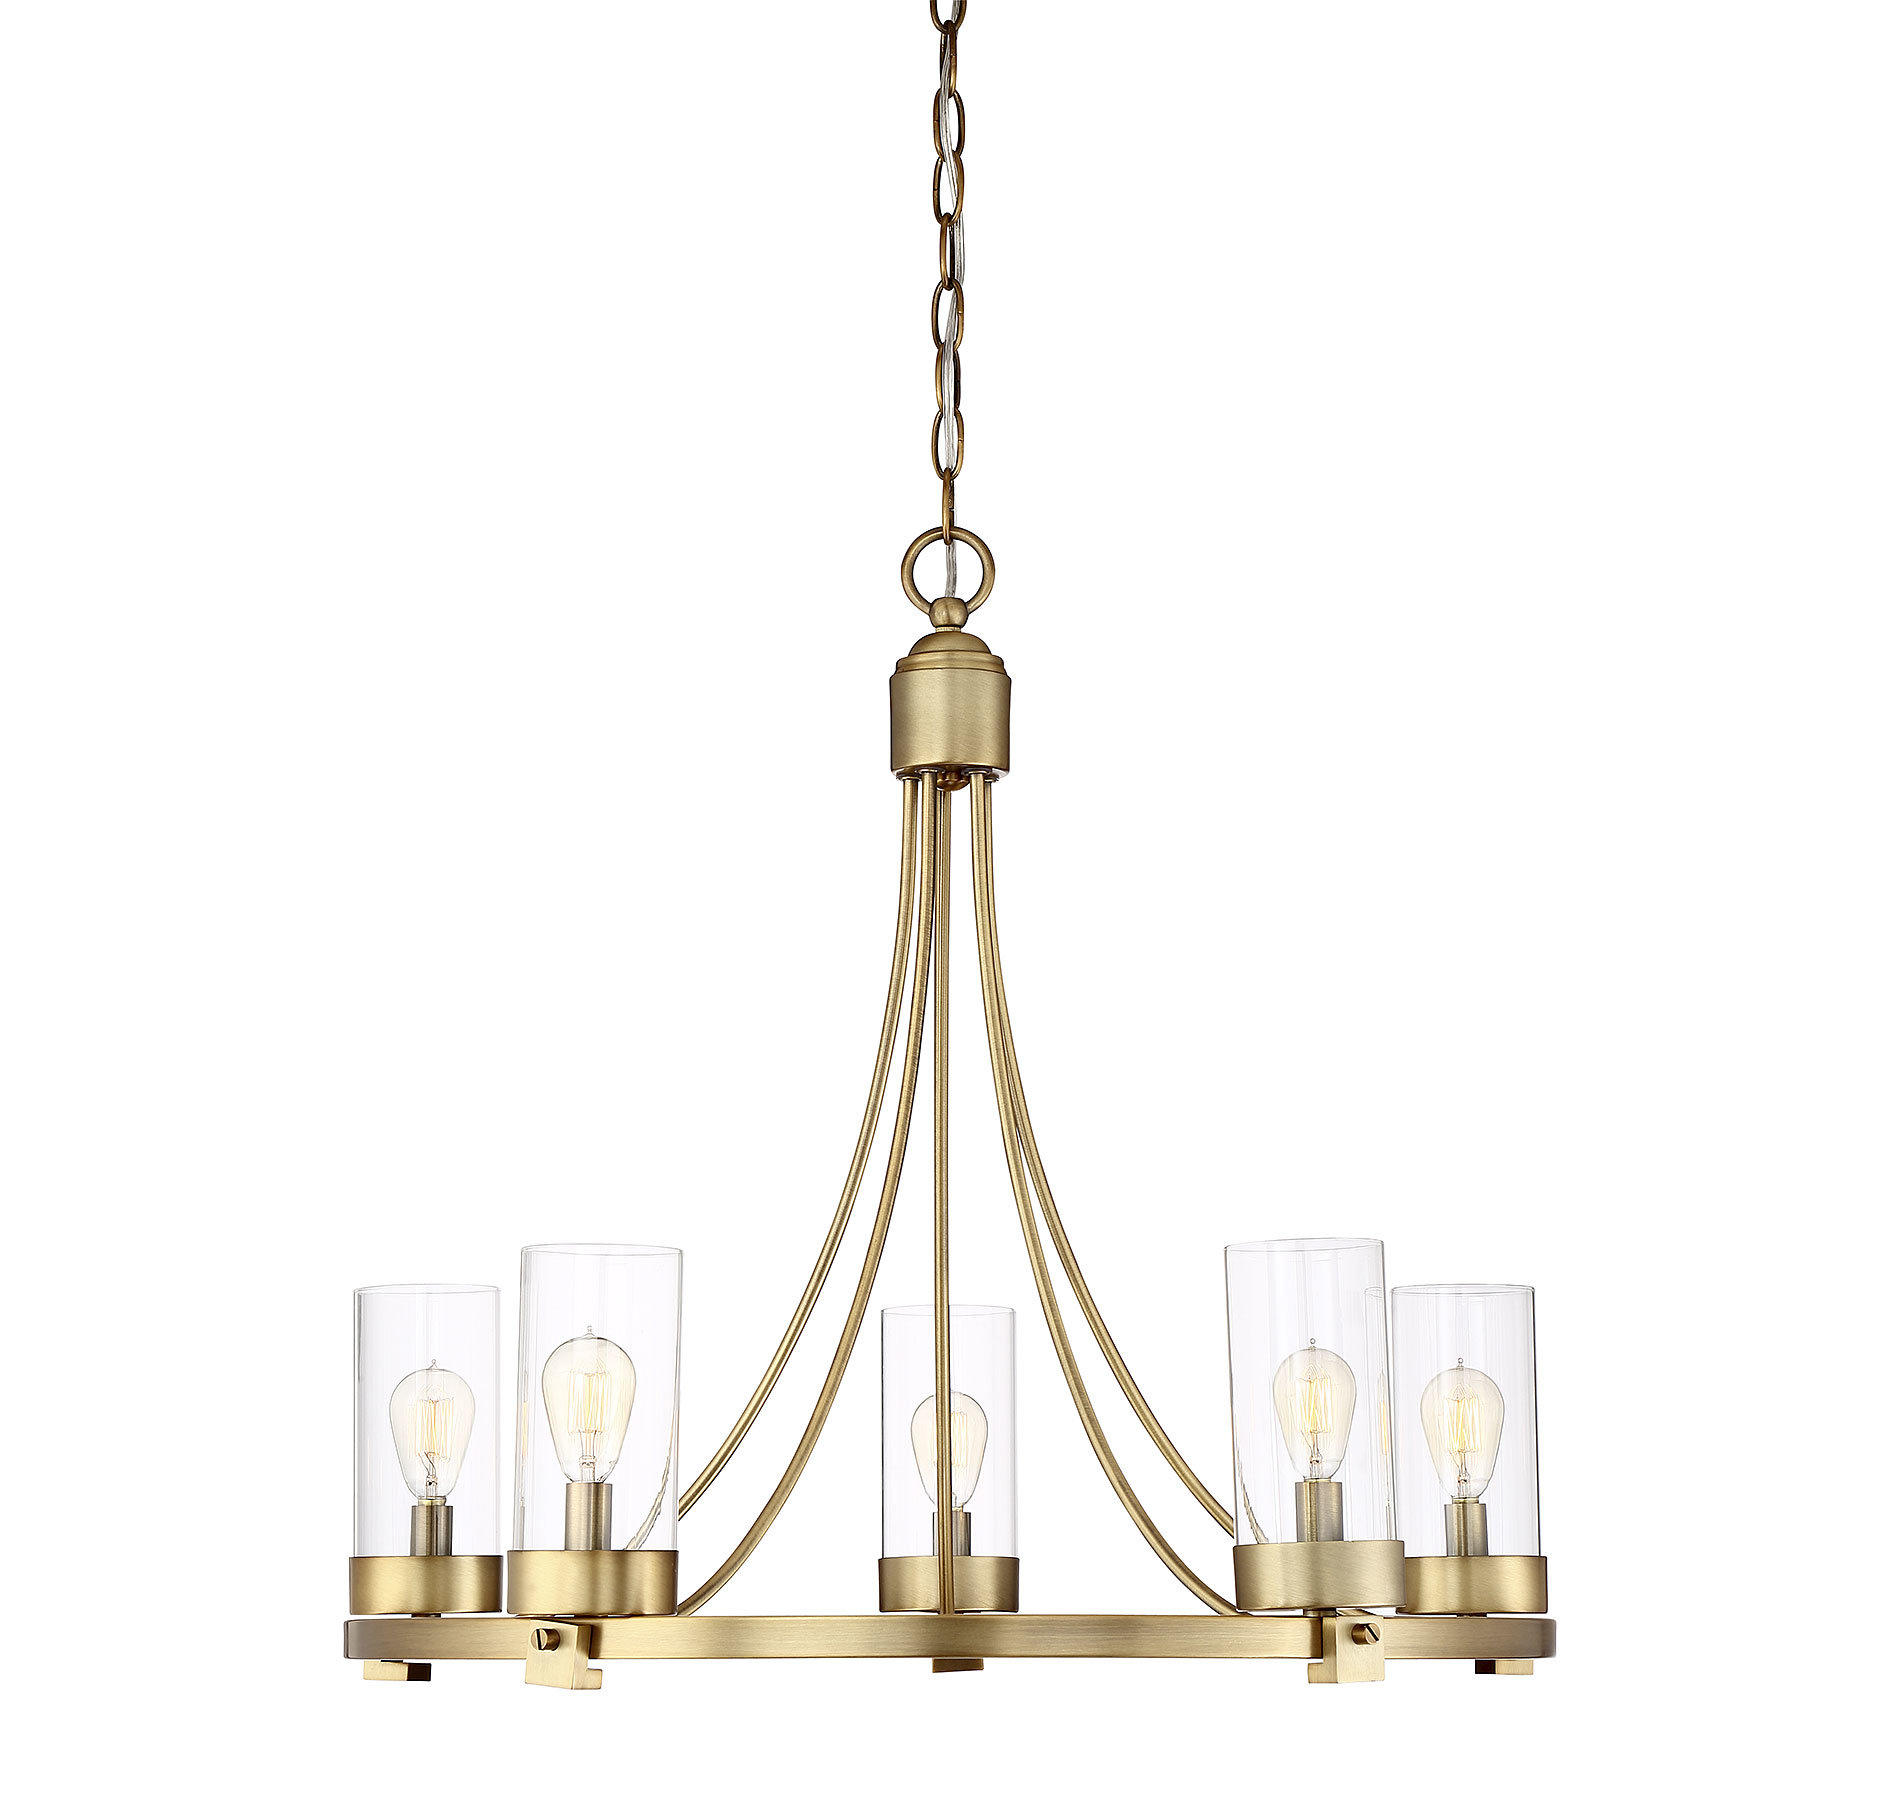 Delshire 5 Light Wagon Wheel Chandelier With Regard To Janette 5 Light Wagon Wheel Chandeliers (Photo 5 of 30)